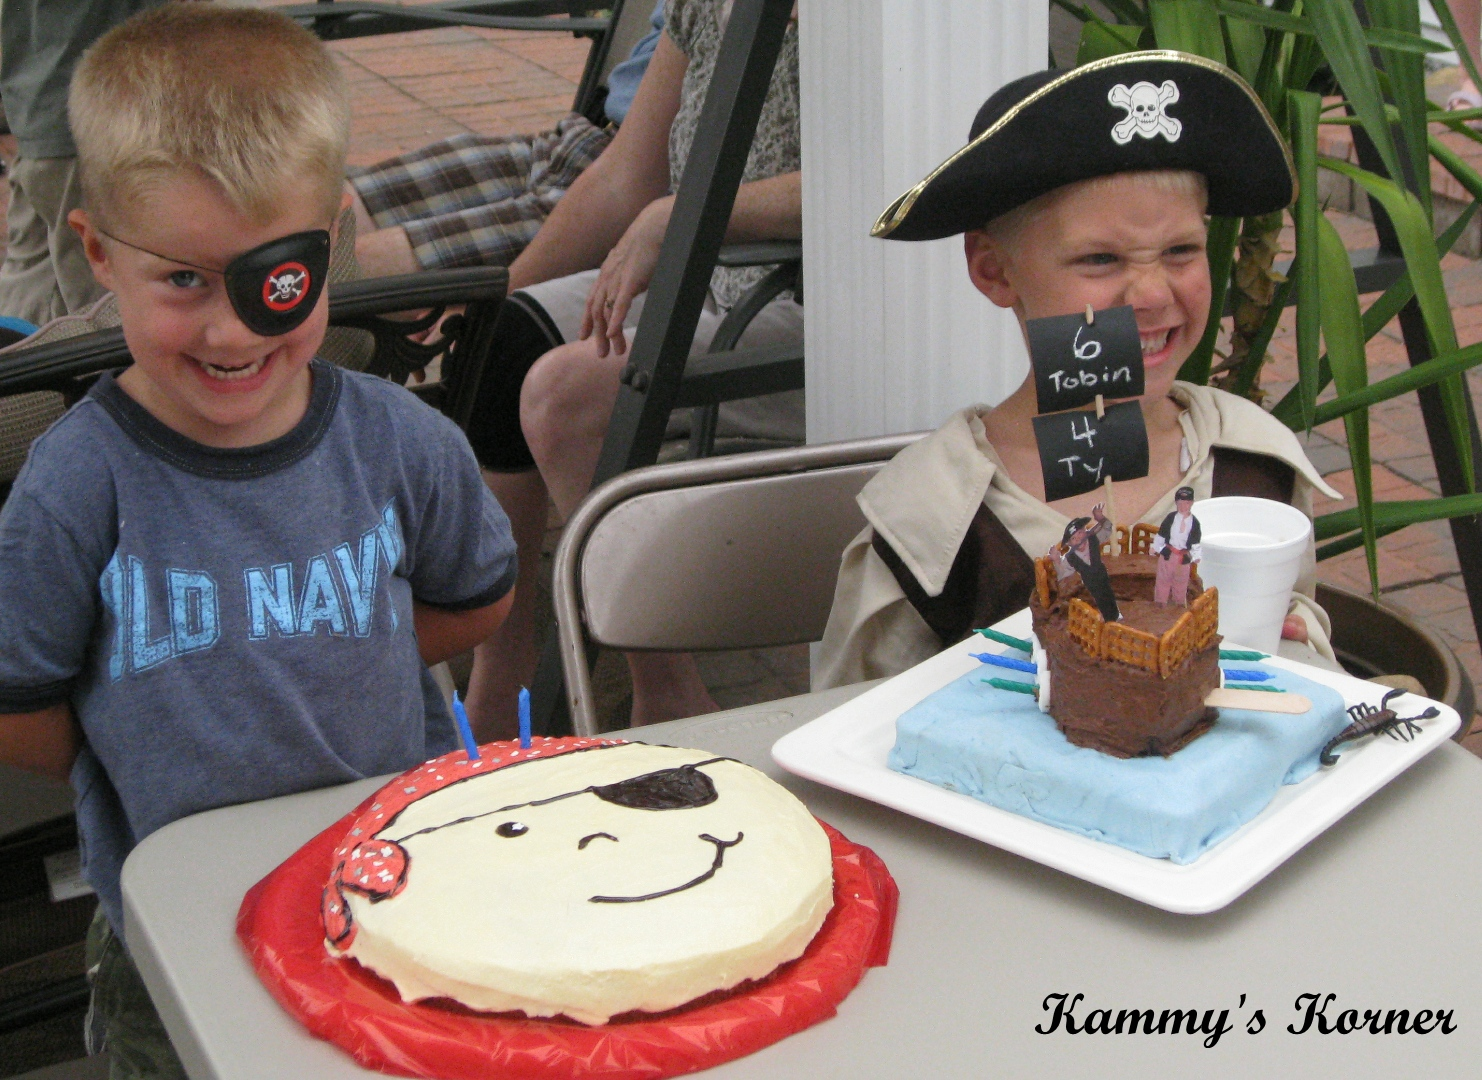 Kammys Korner The Boys Pirate Ship And Pirate Face Birthday Cakes